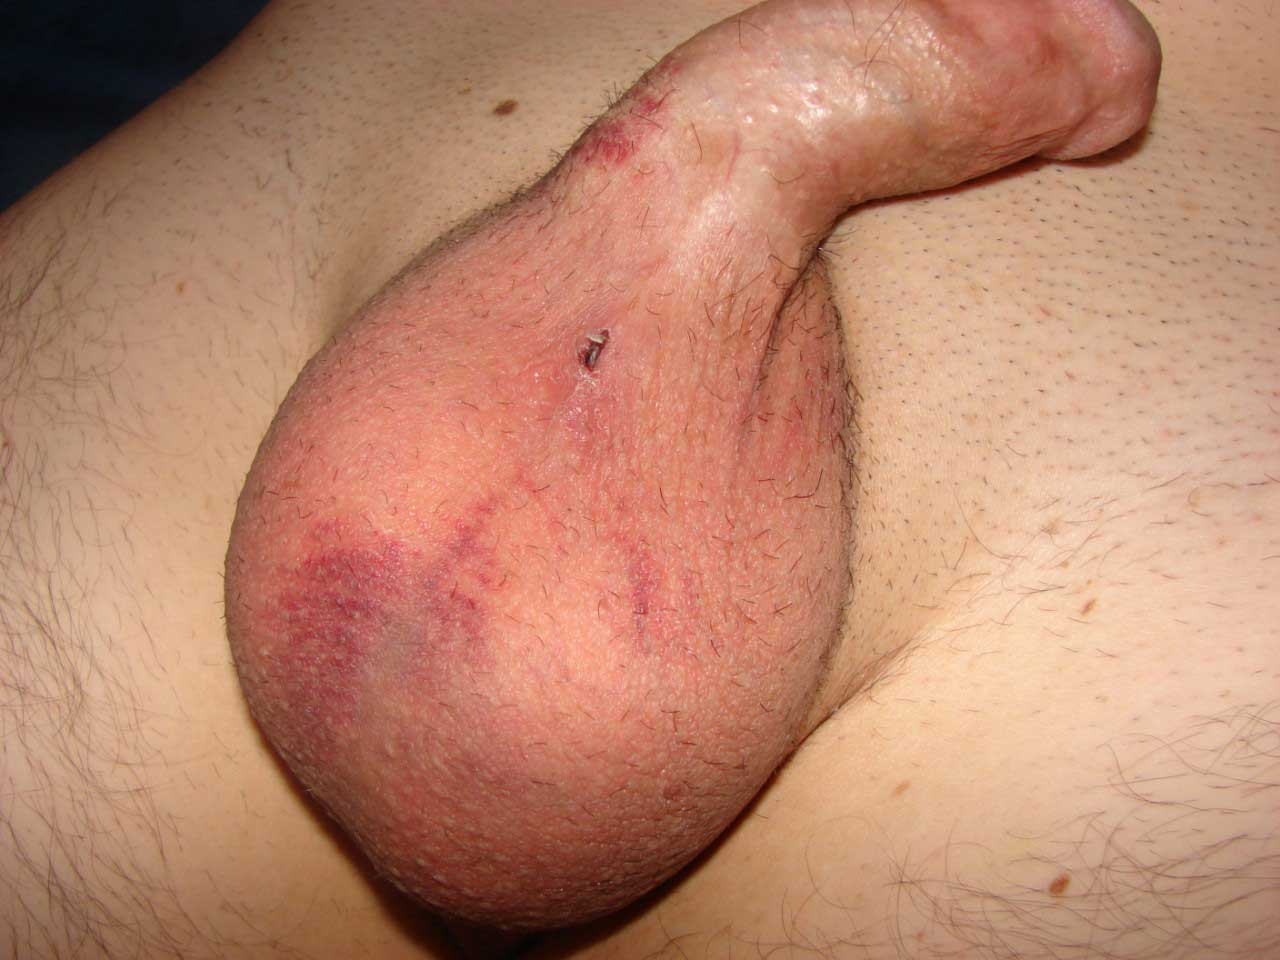 What could cause a painless bruise on penis